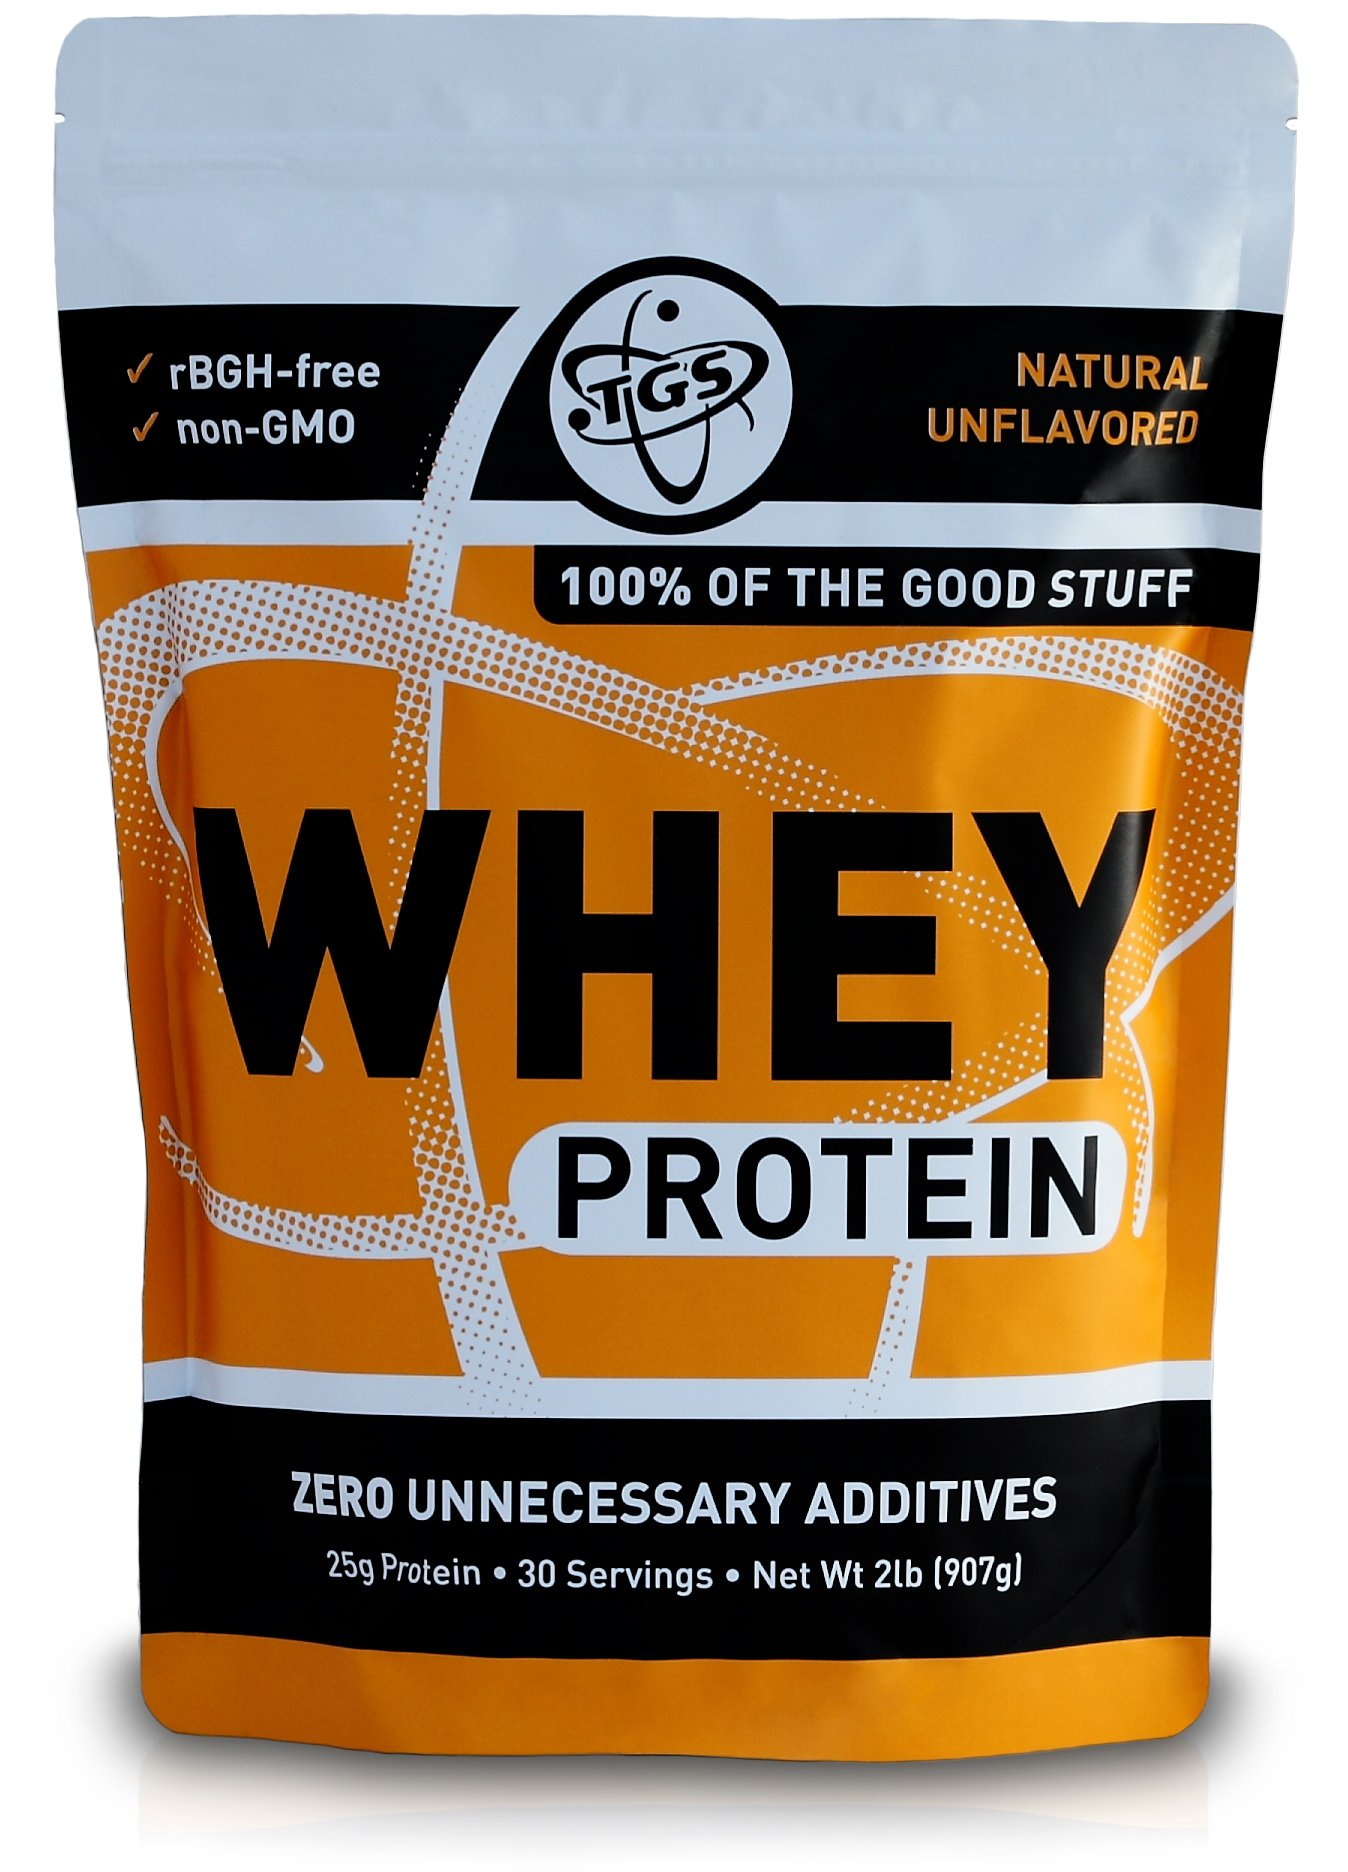 TGS All Natural 100% Whey Protein Powder - Unflavored, Undenatured, Unsweetened - Low Carb, Soy Free, GMO Free (2 lb) by TGS Nutrition